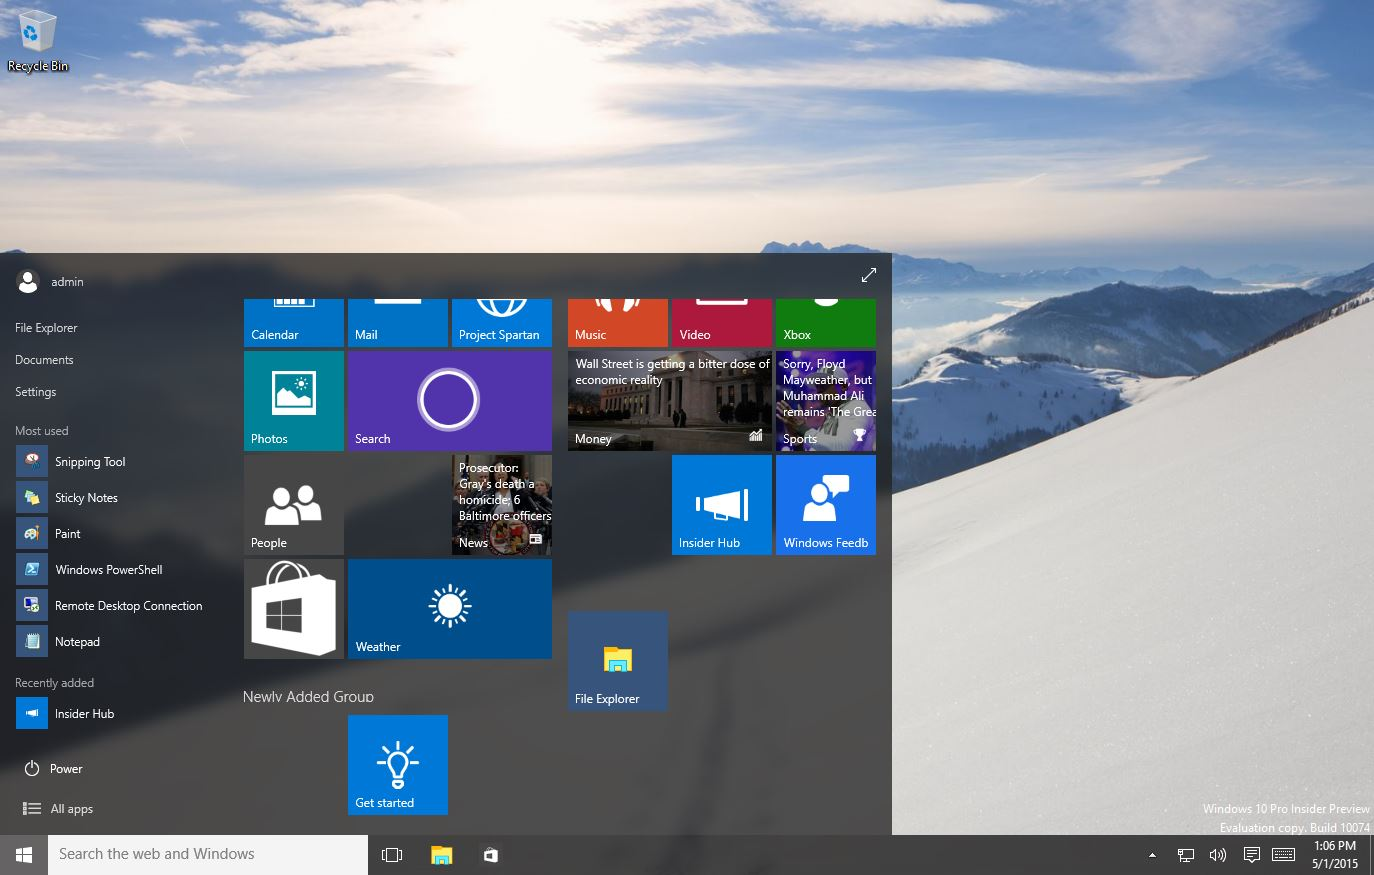 Windows 10 Insider Preview Build 10074 Details and Screenshots